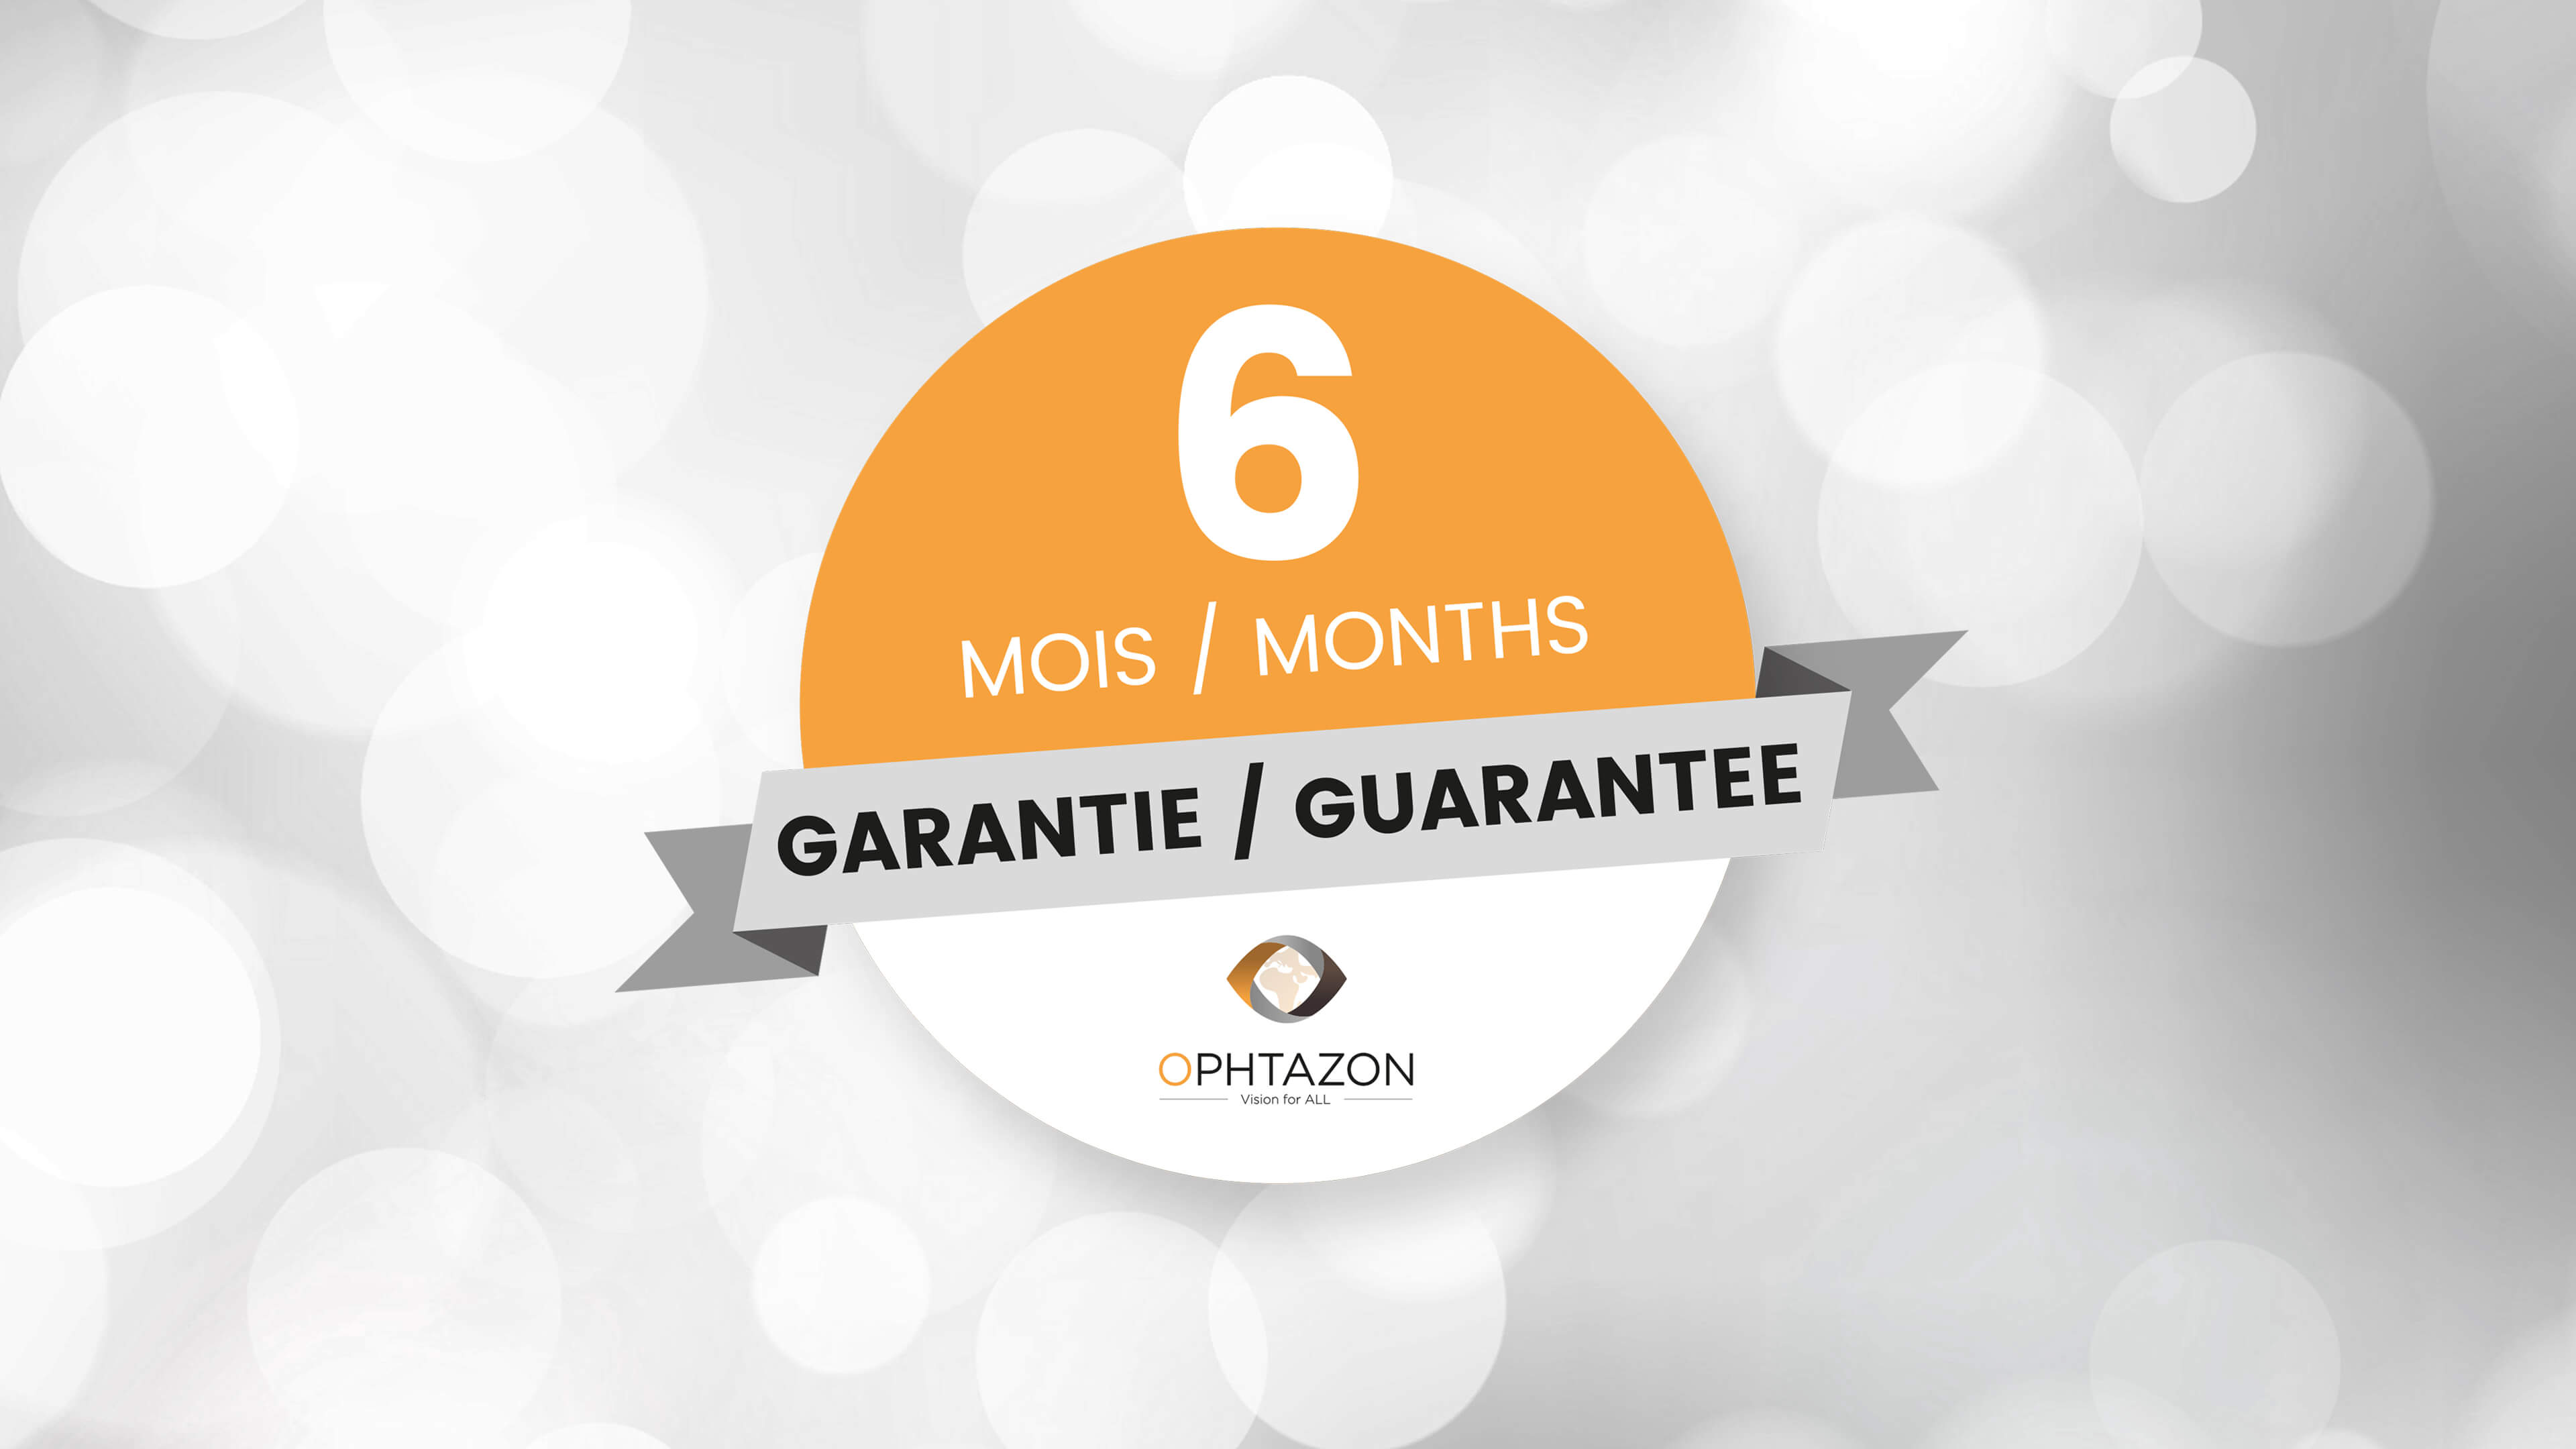 La garantie OPHTAZON - OPHTAZON guarantee